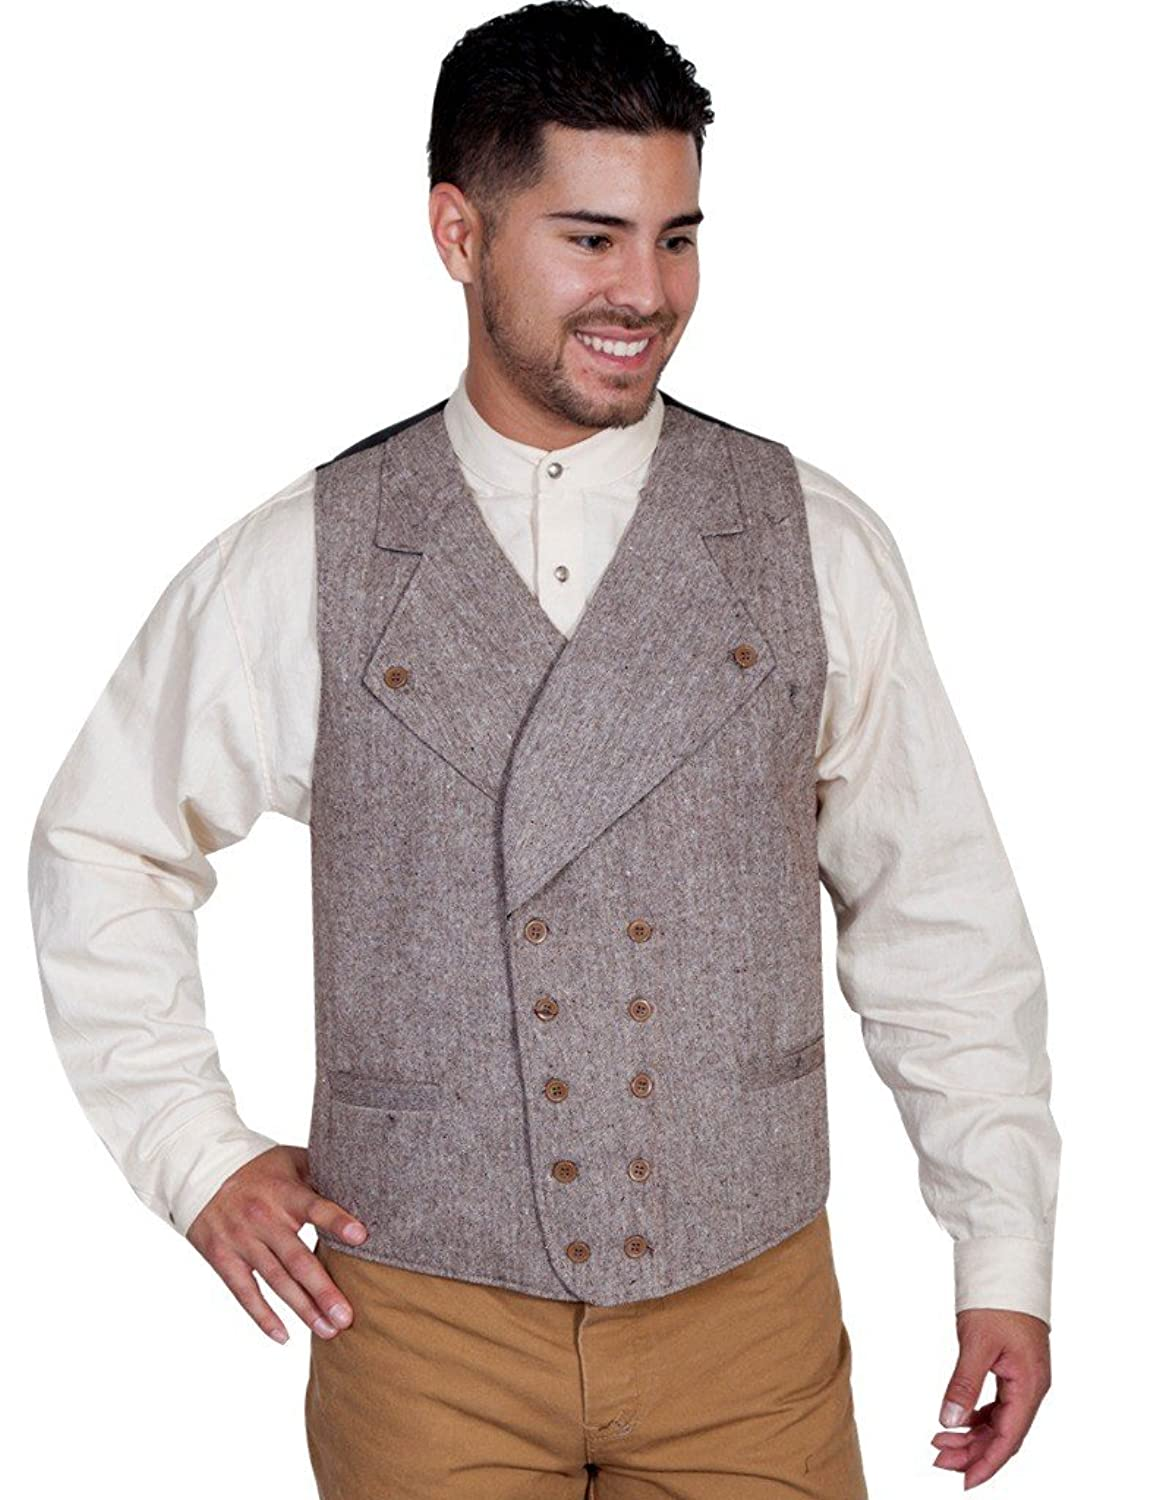 Men's Vintage Inspired Vests Scully Double Breasted Vest - Brown $75.00 AT vintagedancer.com